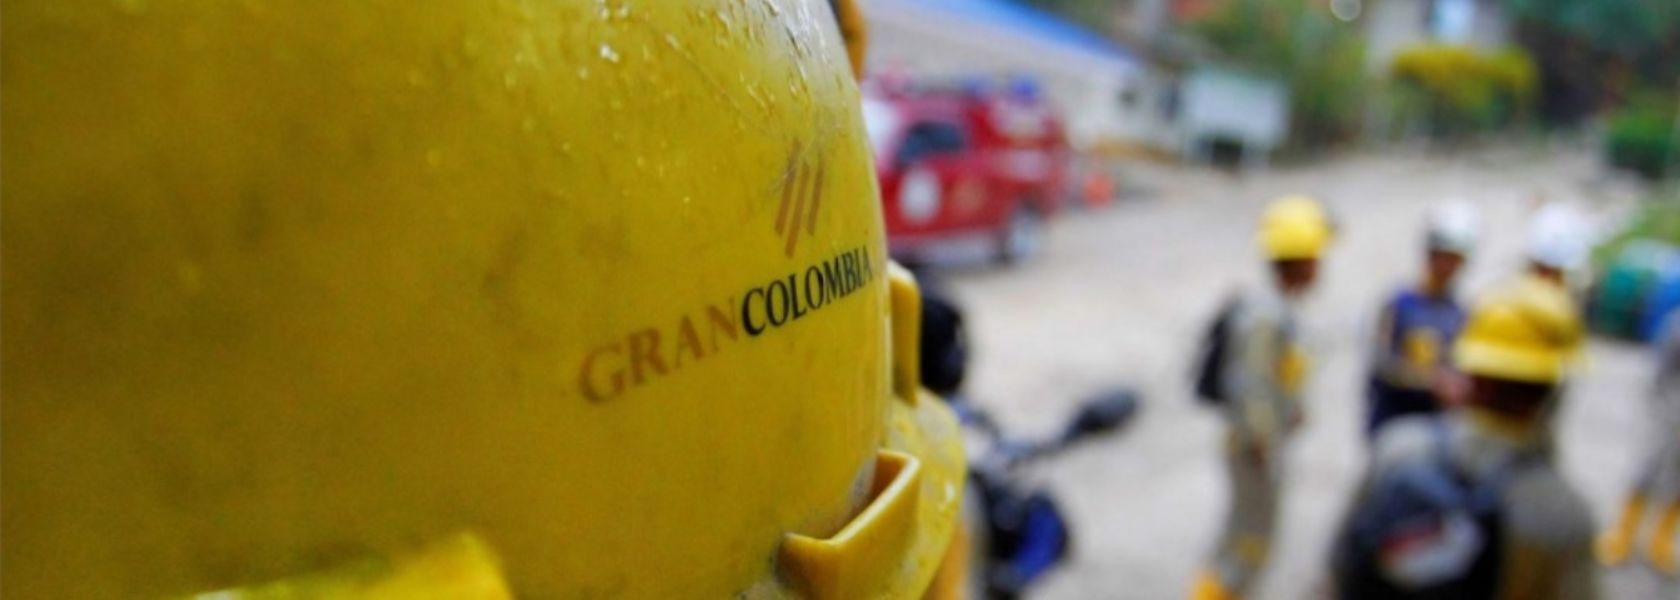 Gran Colombia to raise C$40 million